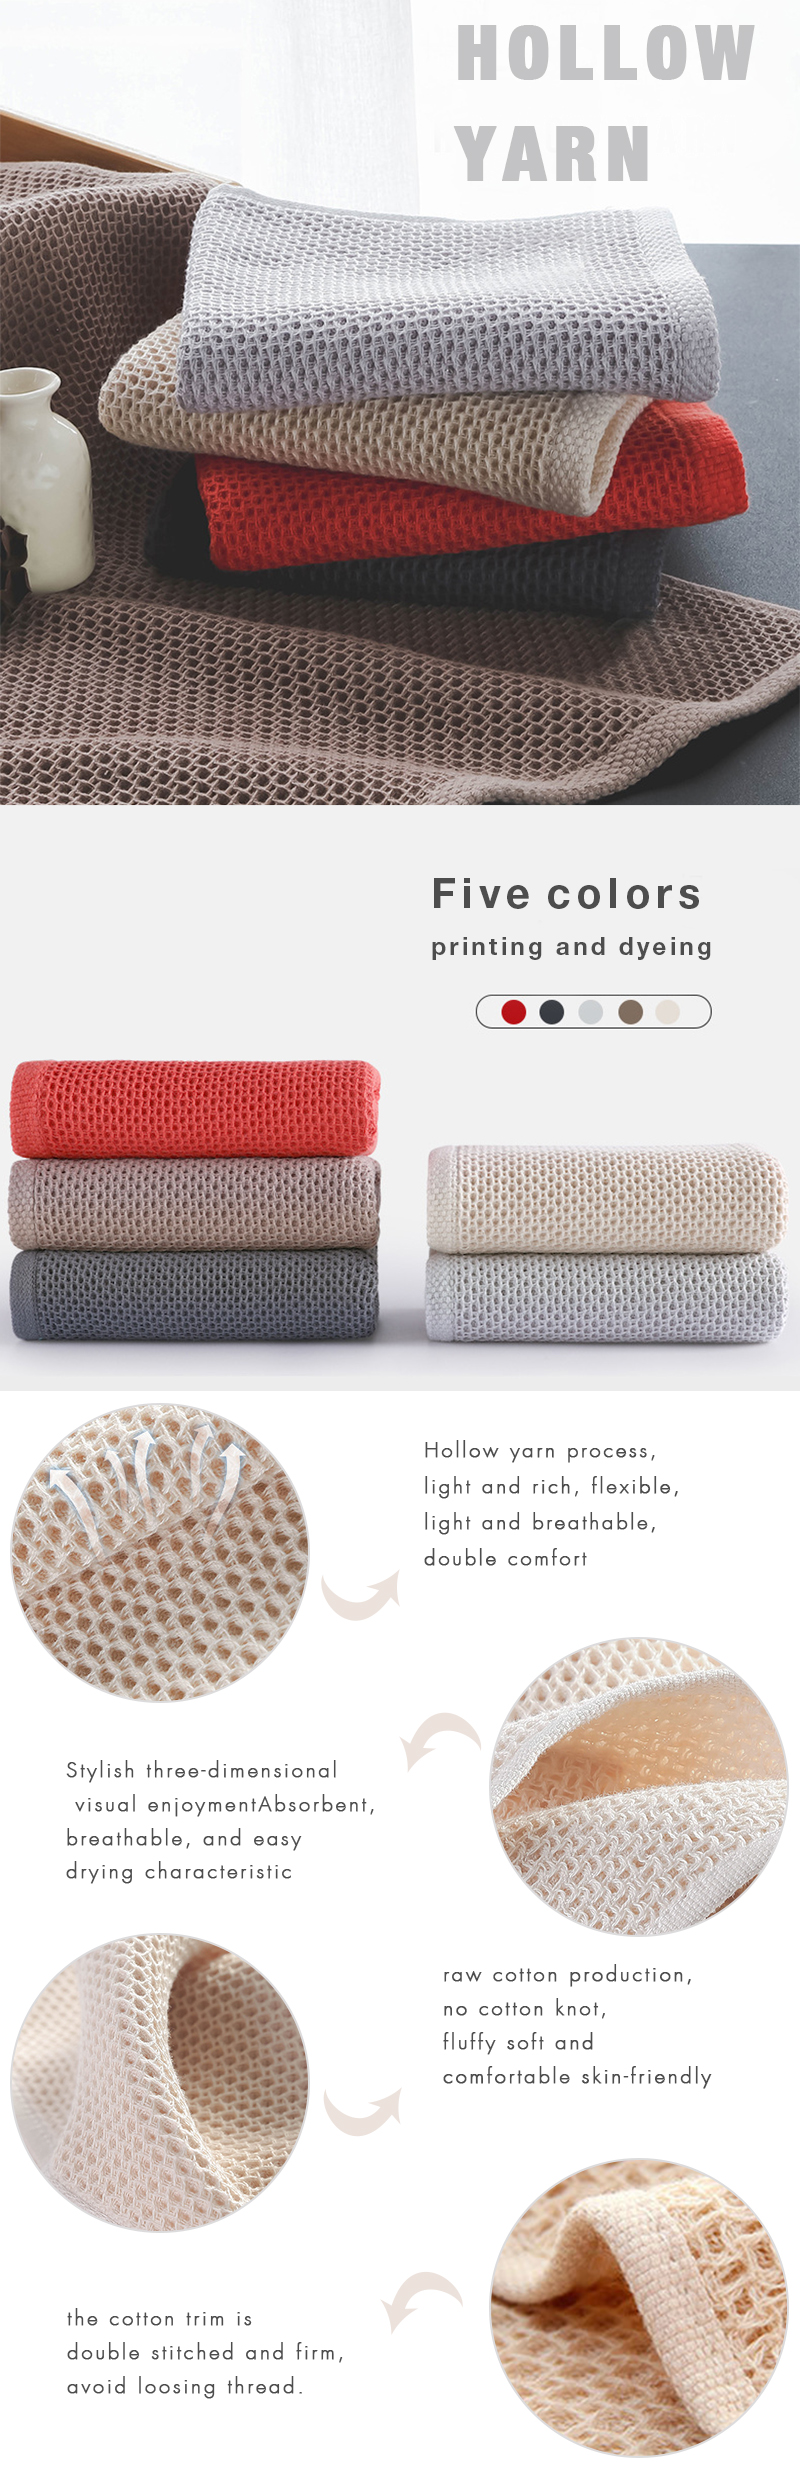 high density 100% cotton towel Luxury hotel & spa bath towels for family